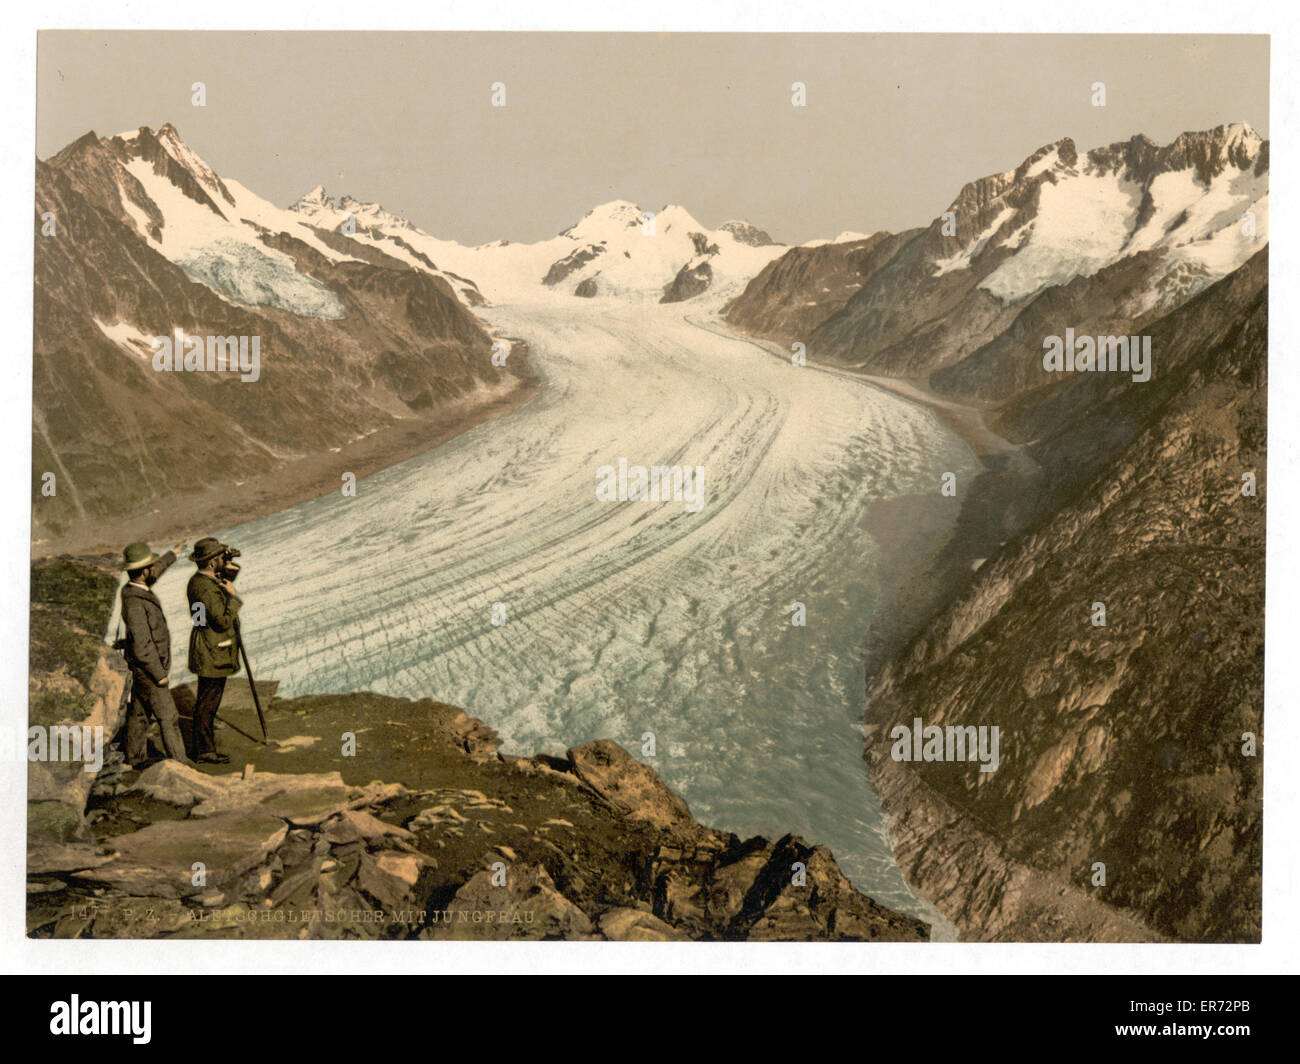 Eggishorn, Grand Aletsch Glacier, with Jungfrau, Monch and Eiger, Valais, Alps of, Switzerland. Date between ca. - Stock Image